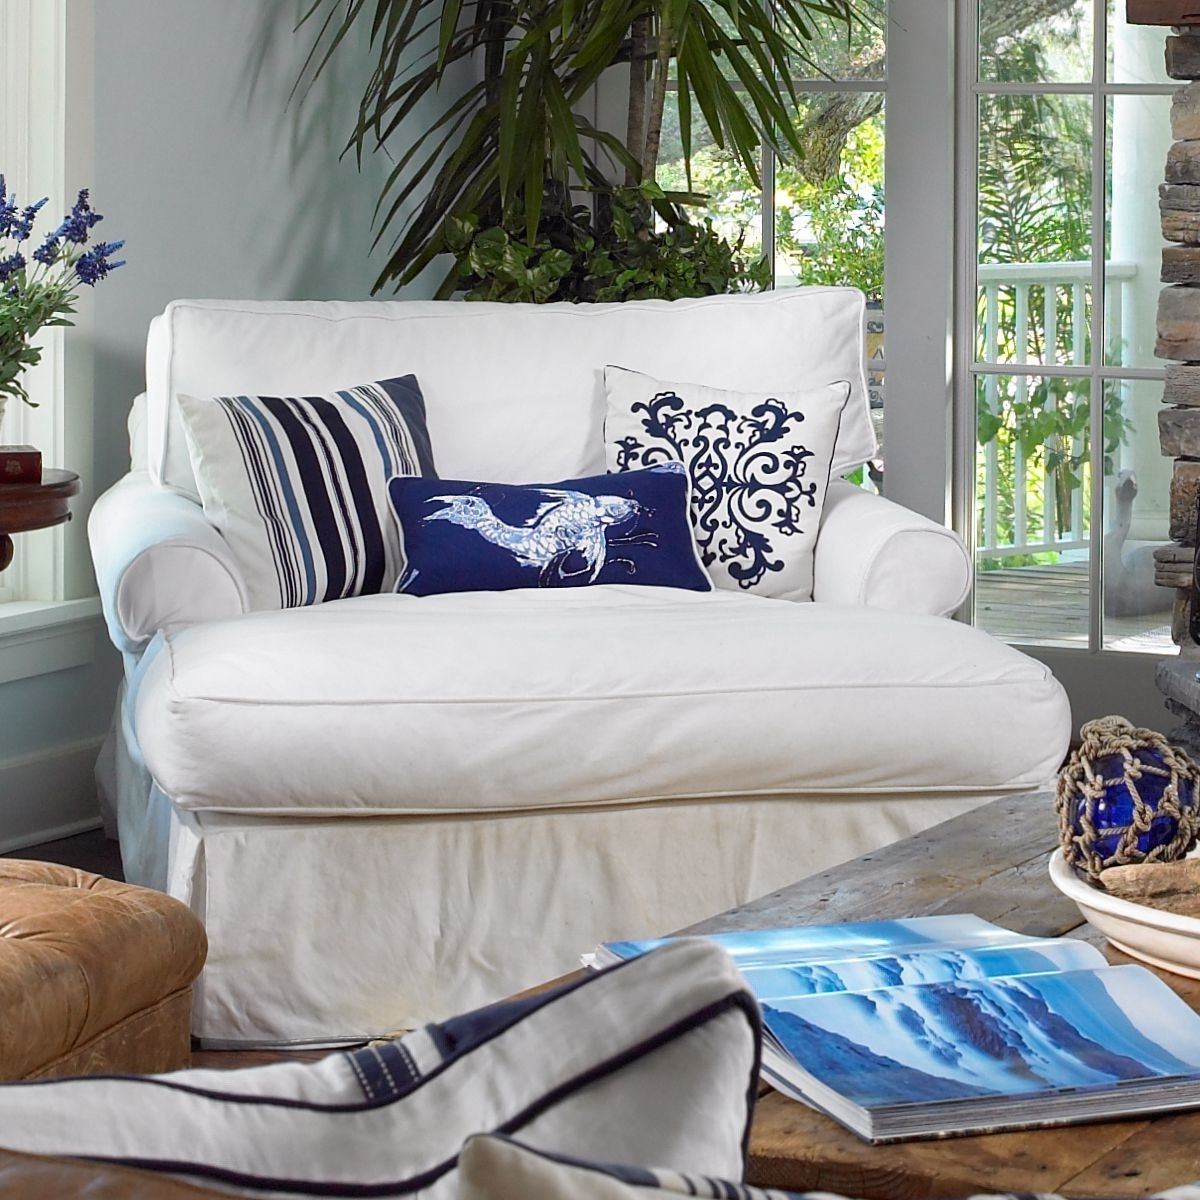 Found It!!! I Am In Love With This Oversized Chaise Lounge Chair Throughout Trendy Oversized Chaise Lounge Chairs (View 2 of 15)